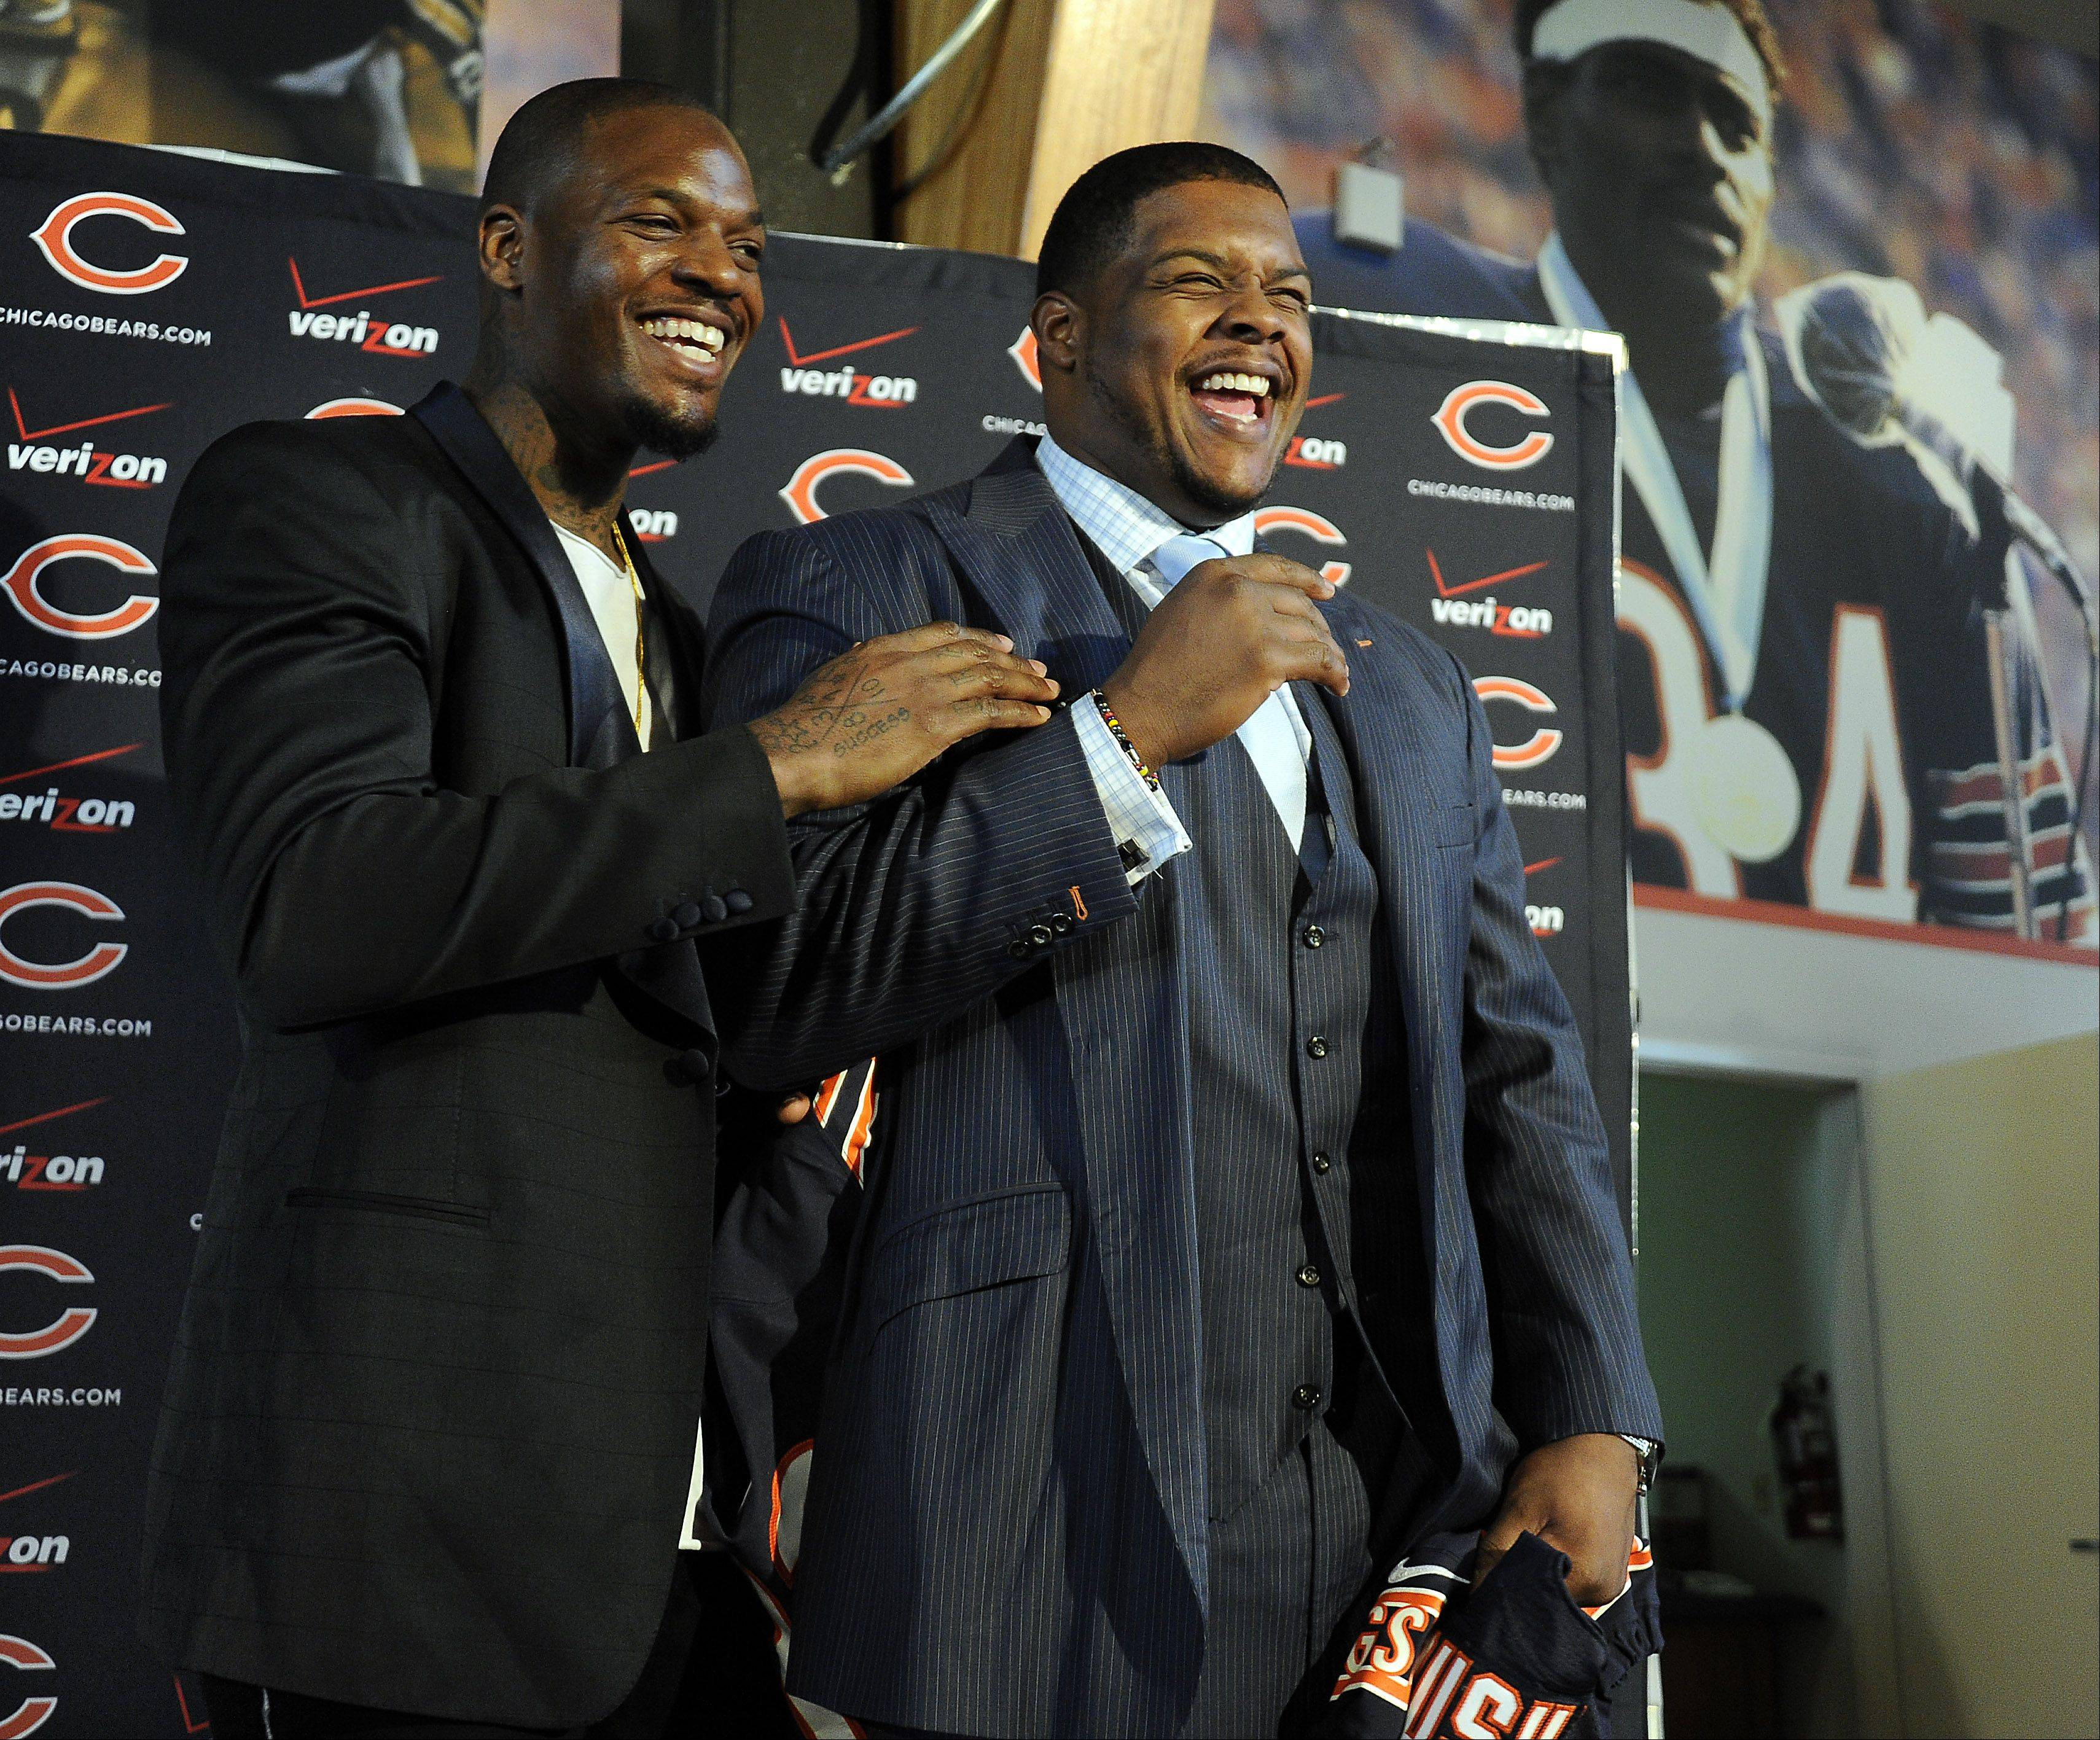 Under the watchful eye of Bear's great Walter Payton, tight end Martellus Bennett (left) and offensive tackle Jermon Bushrod are introduced at the Walter Payton Center in Lake Forest on Wednesday.